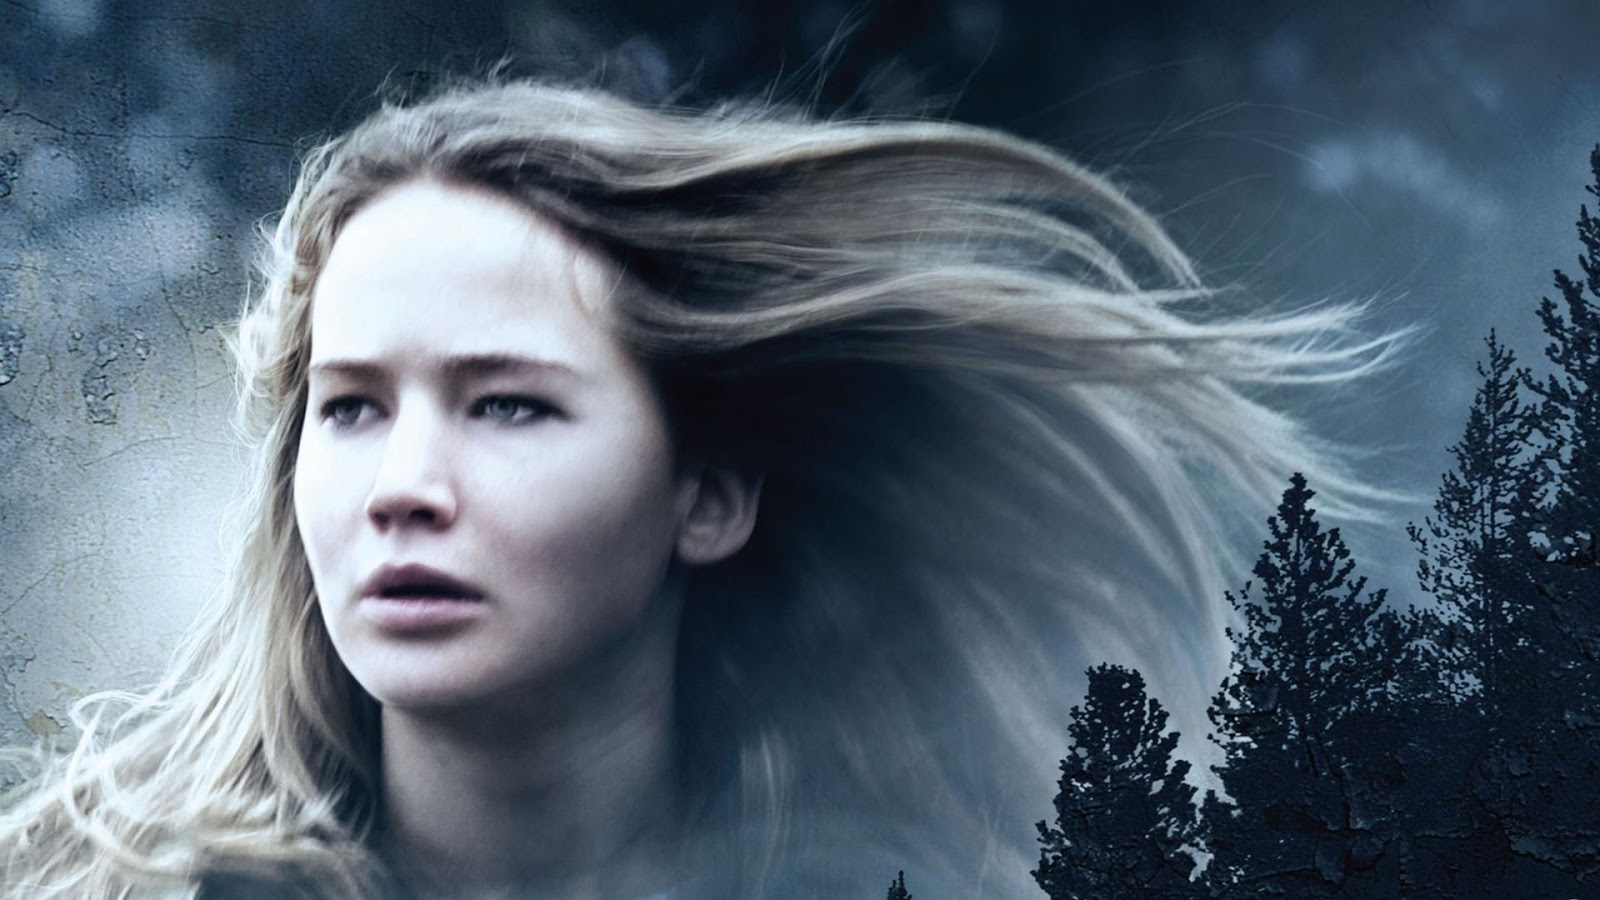 winters bone Watch winter's bone online full free winter's bone full movie with english subtitle stars: john hawkes, jennifer lawrence, garret dillahunt.